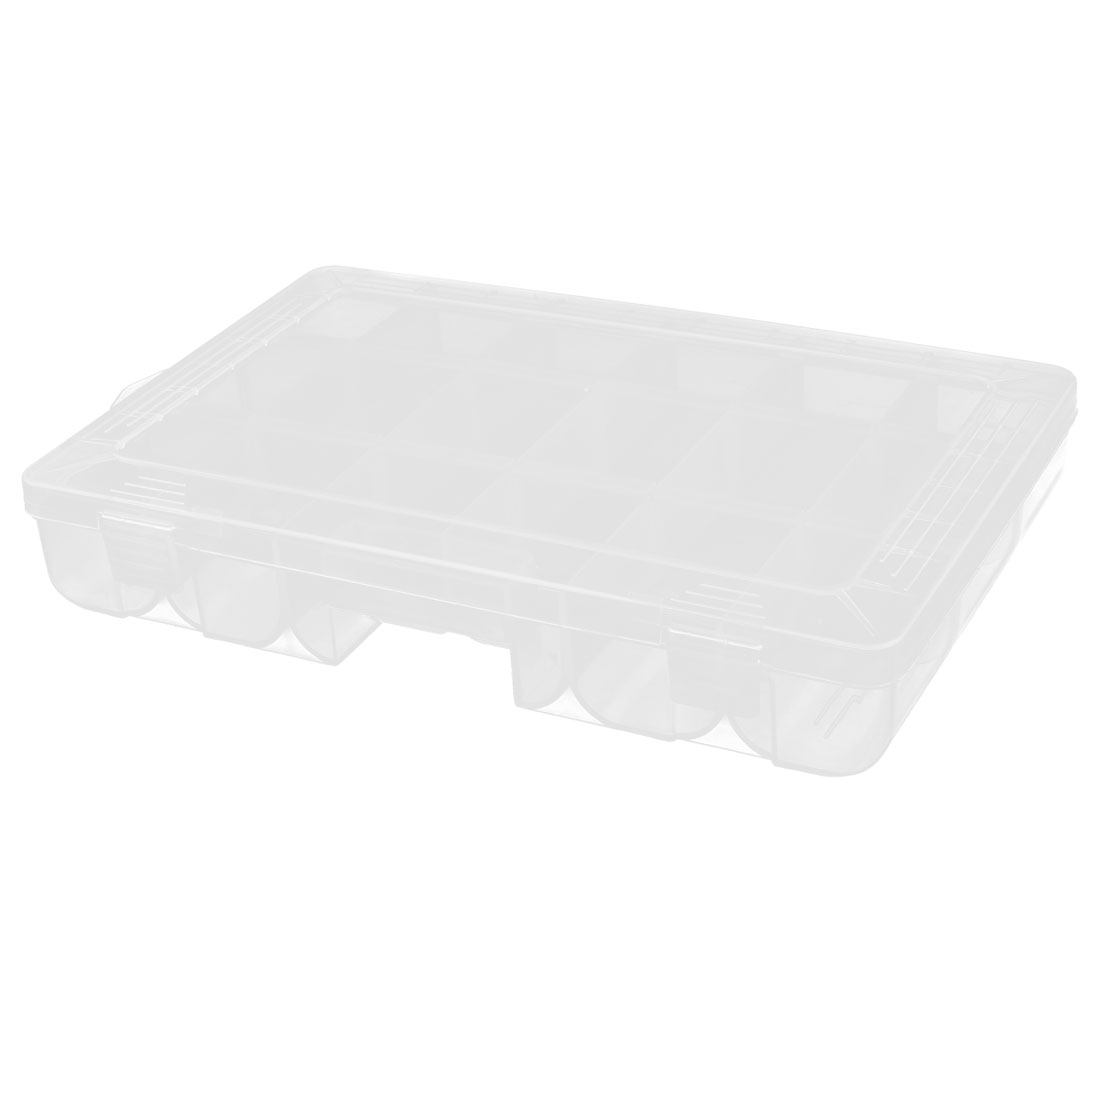 Household Jewelry Screws Plastic Storage Case Box Organizer Conatiner Clear